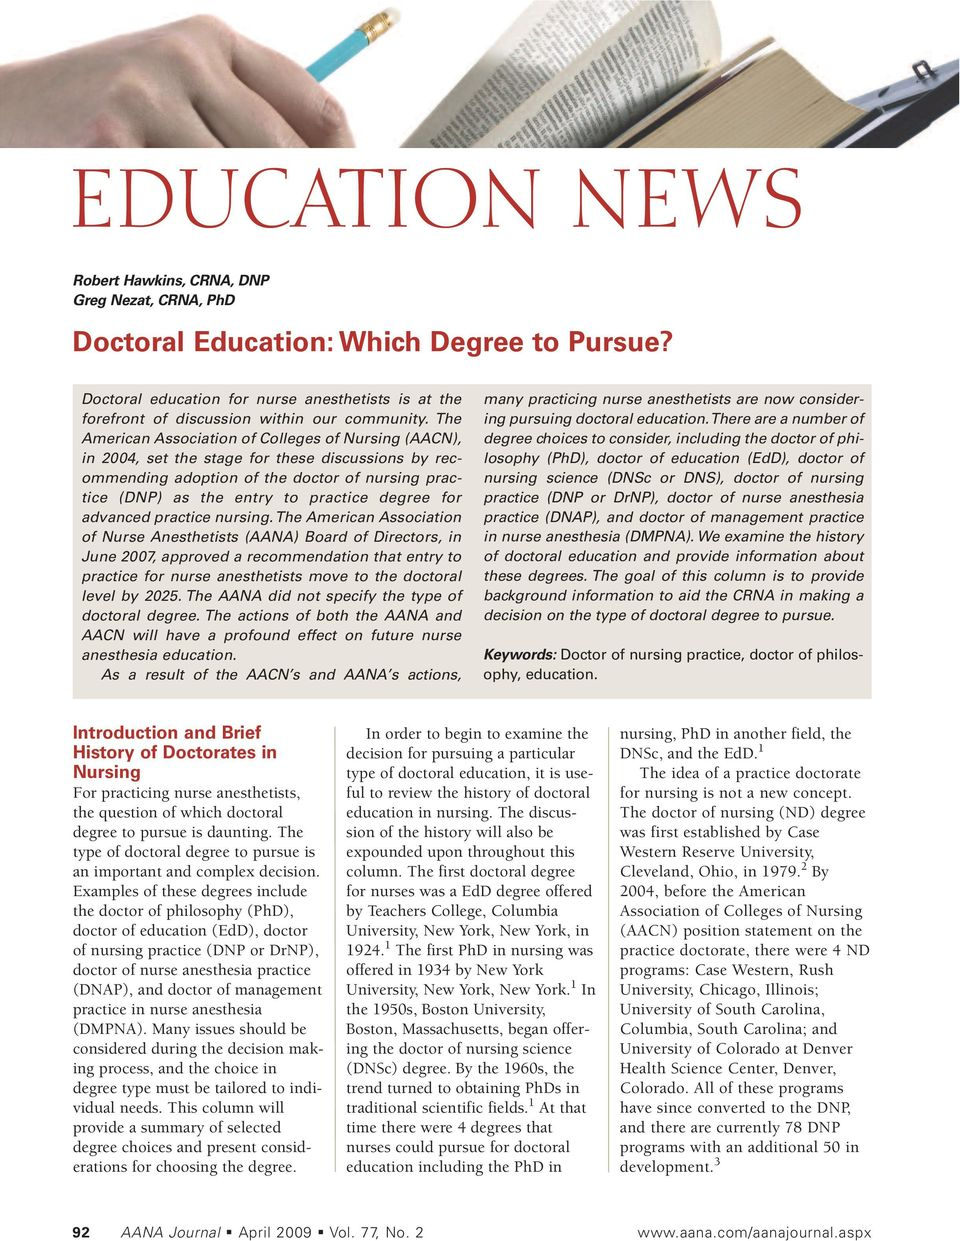 The American Association of Colleges of Nursing (AACN), in 2004, set the stage for these discussions by recommending adoption of the doctor of nursing practice (DNP) as the entry to practice degree